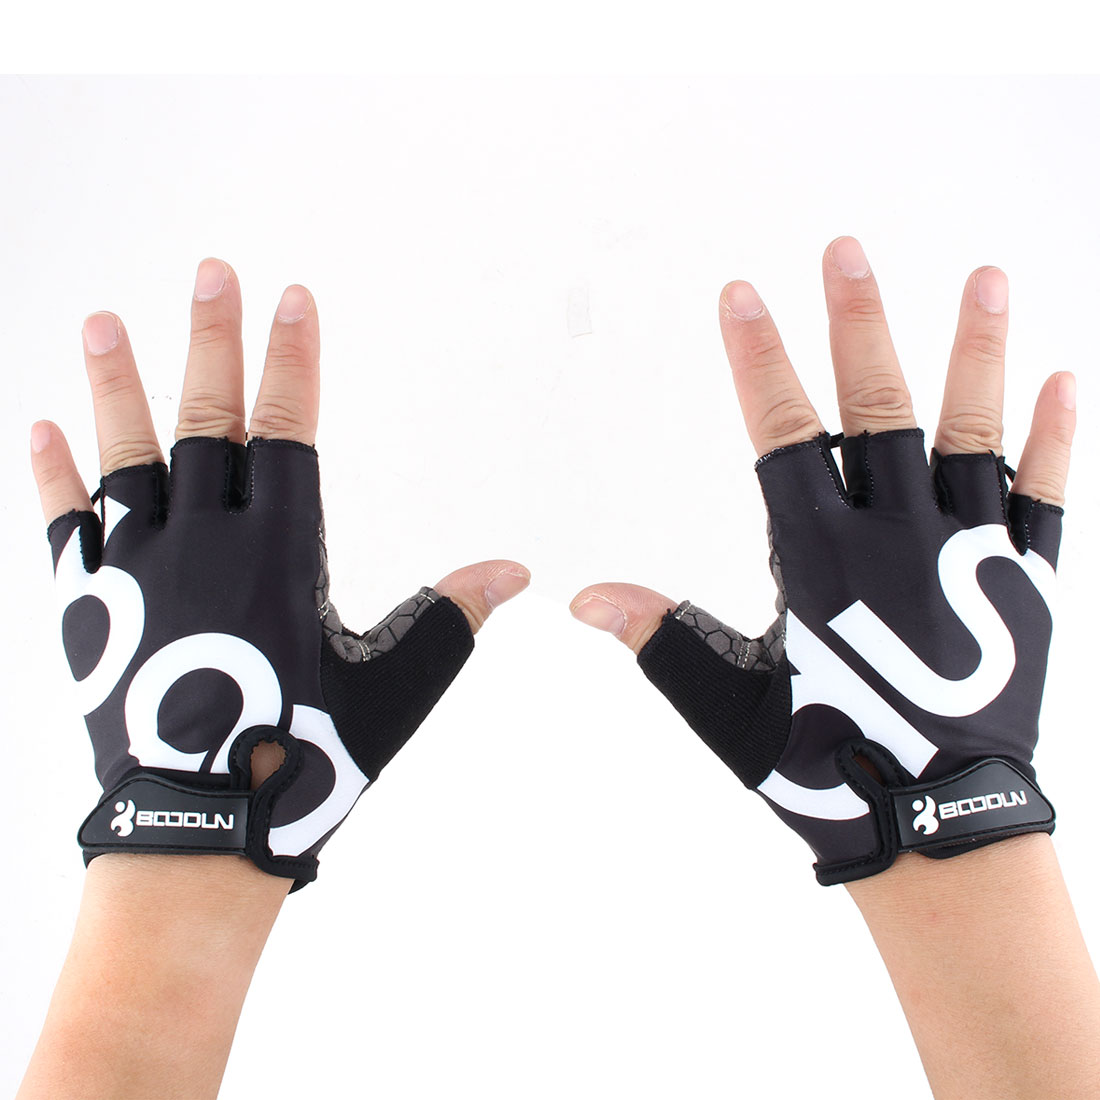 BOODUN Authorized Unisex Outdoor Sports Cycling Biking Exercise Adjustable Fitness Half Finger Gloves Black XL Size Pair